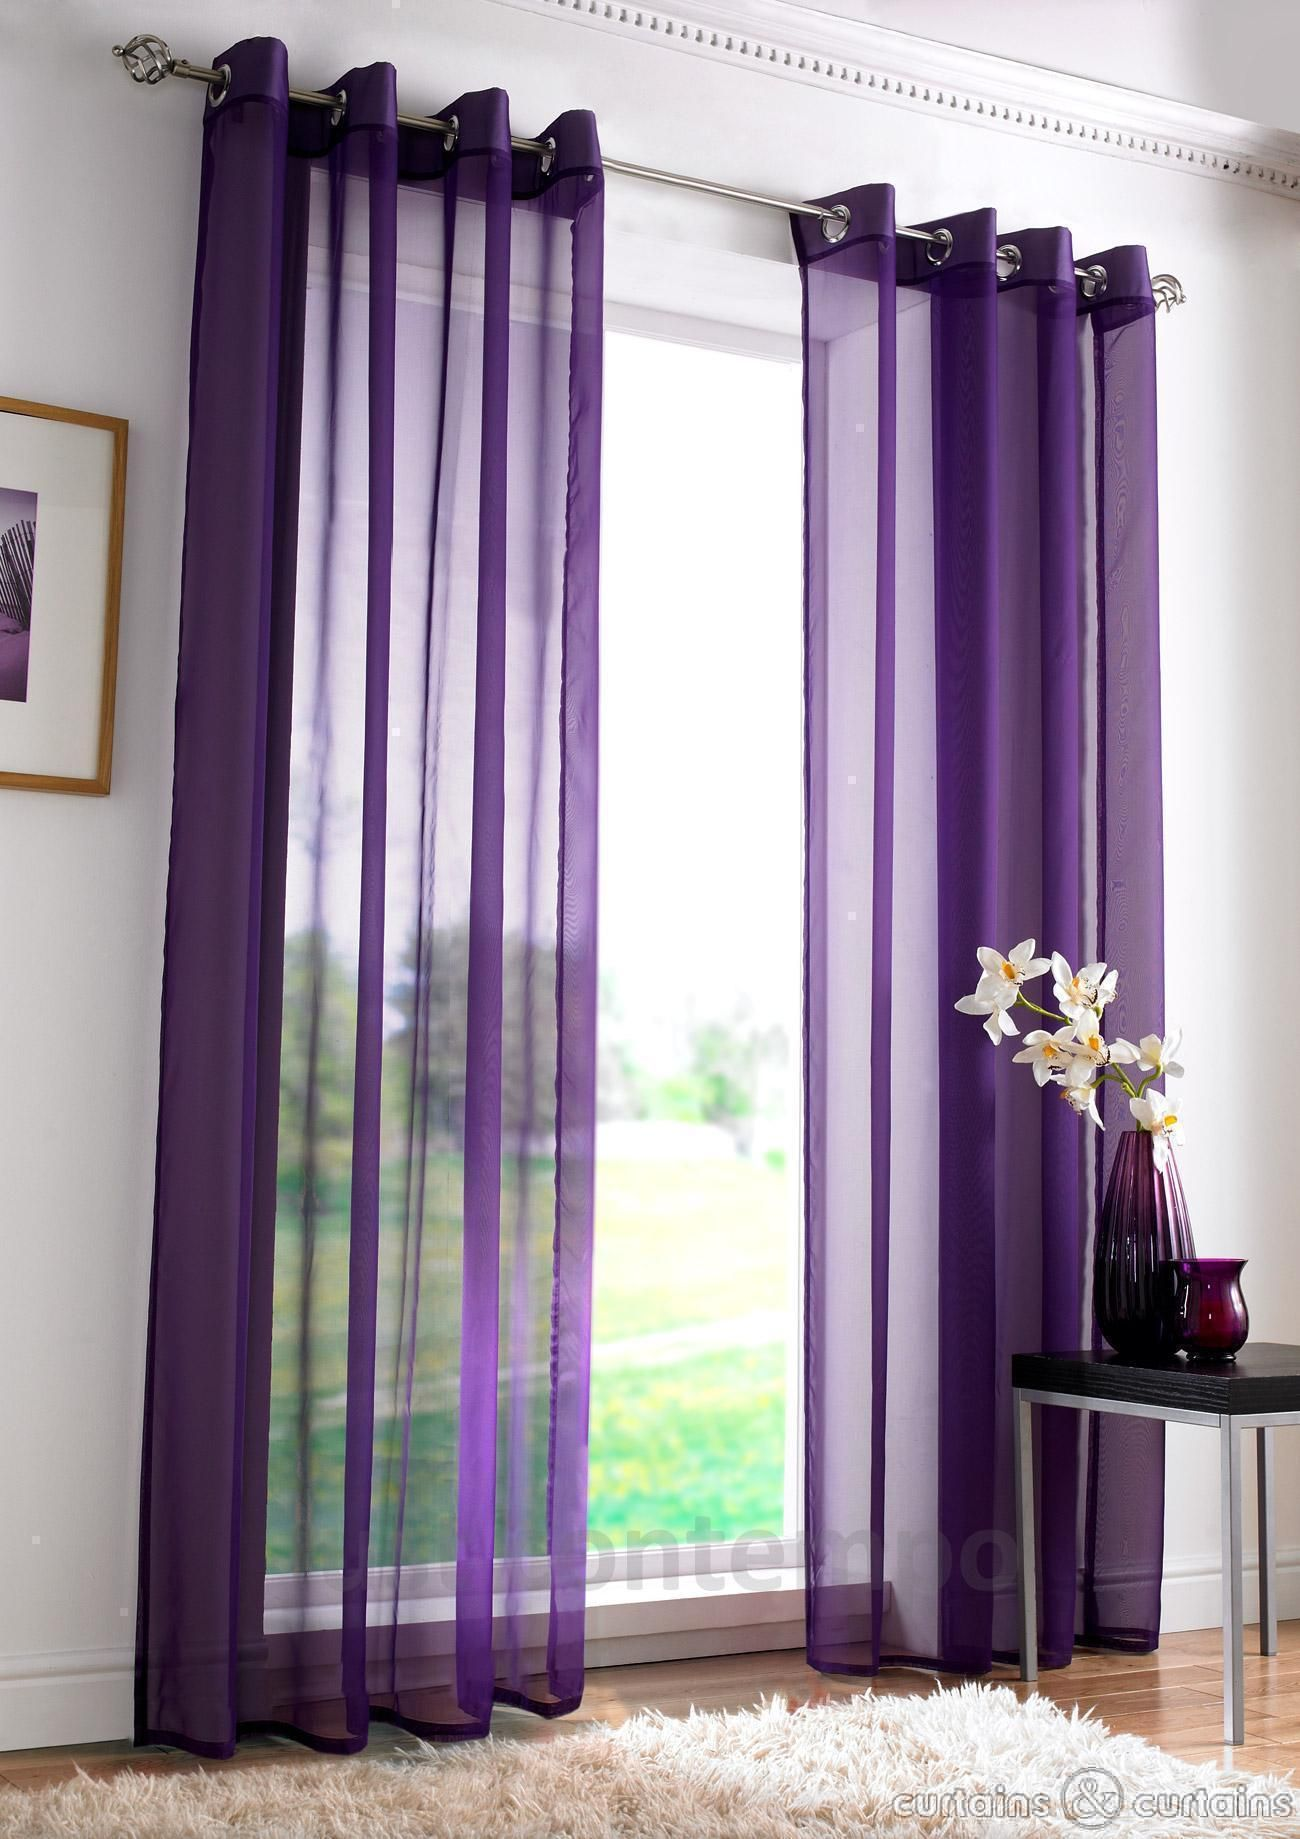 I M Thinking Maybe Going With Purple As The Accent Color In Our